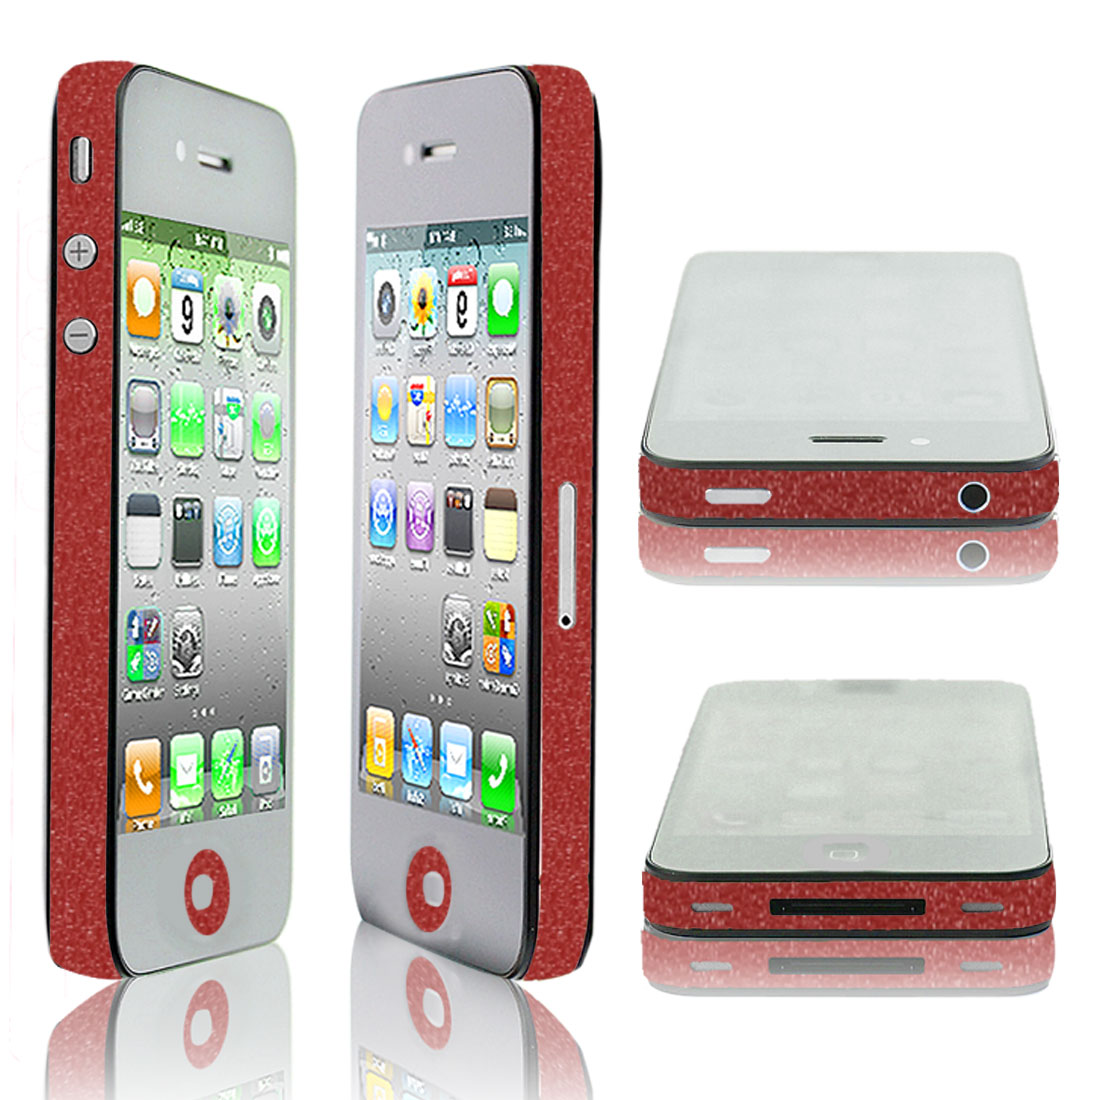 Red Vinyl Frame Button Side Edge Wrap Decal for iPhone 4 4G 4S 4GS